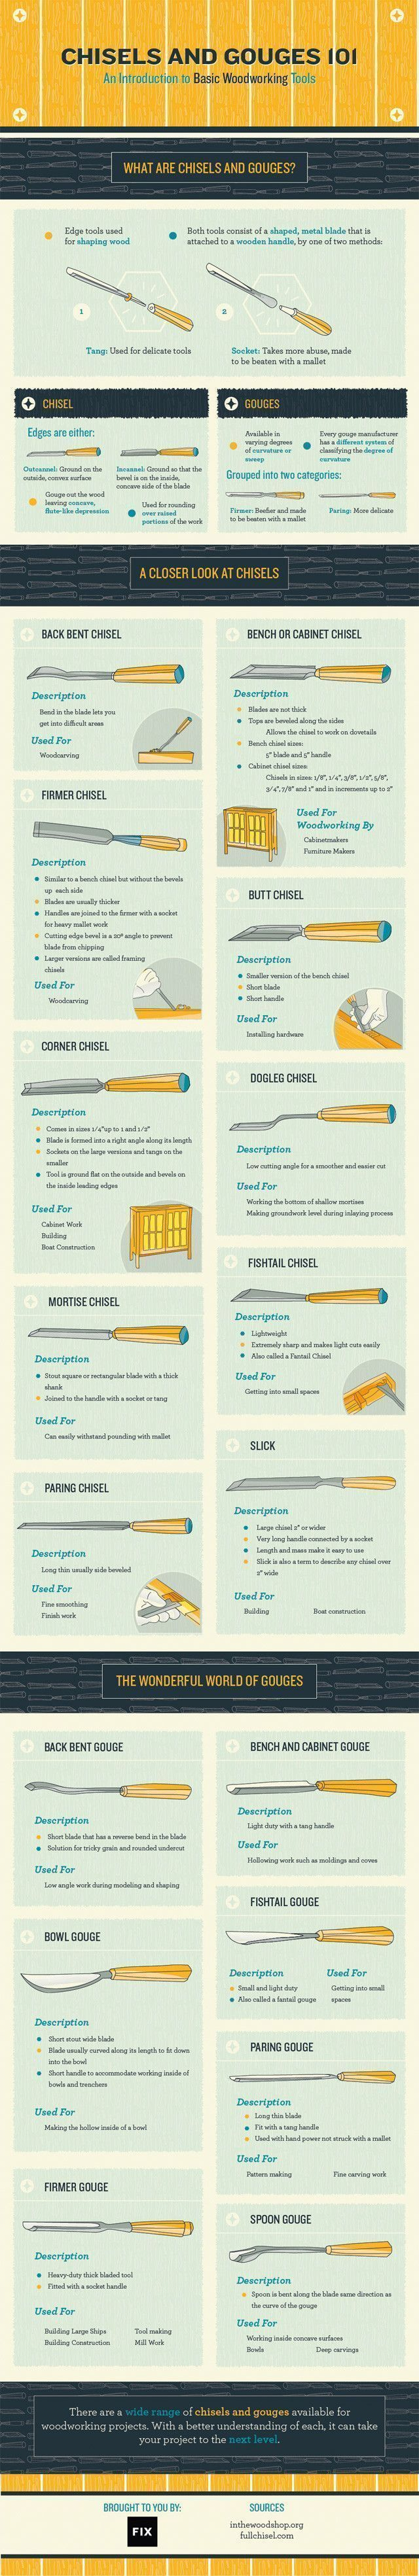 Chisels and Gouges 101: An Introduction to Basic ...